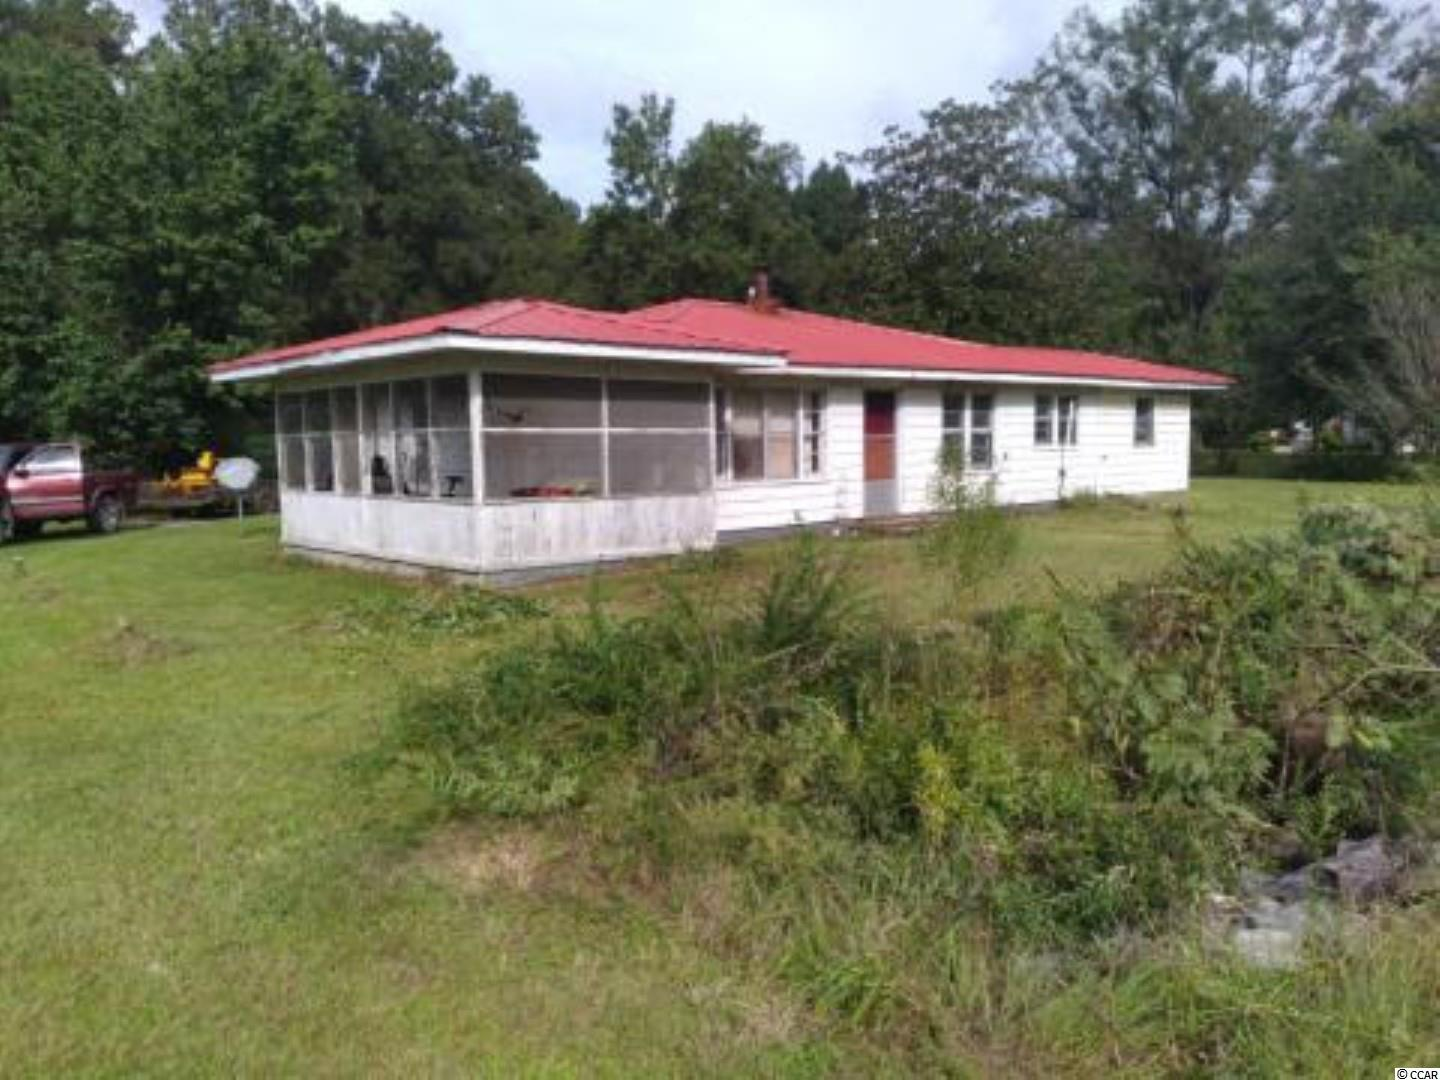 Here is a 3 Bedroom 1 Bathroom home to acquire as a potential flip opportunity or for someone who would like to remodel and use for themselves. Located on a very private 1.8 Acres close to Georgetown and Andrews. The owner had a new metal roof installed in 2014, this home is solidly built and has good bones. Property is Zoned General Commercial which allows for most any use. List of Permitted Uses for General Commercial is available.